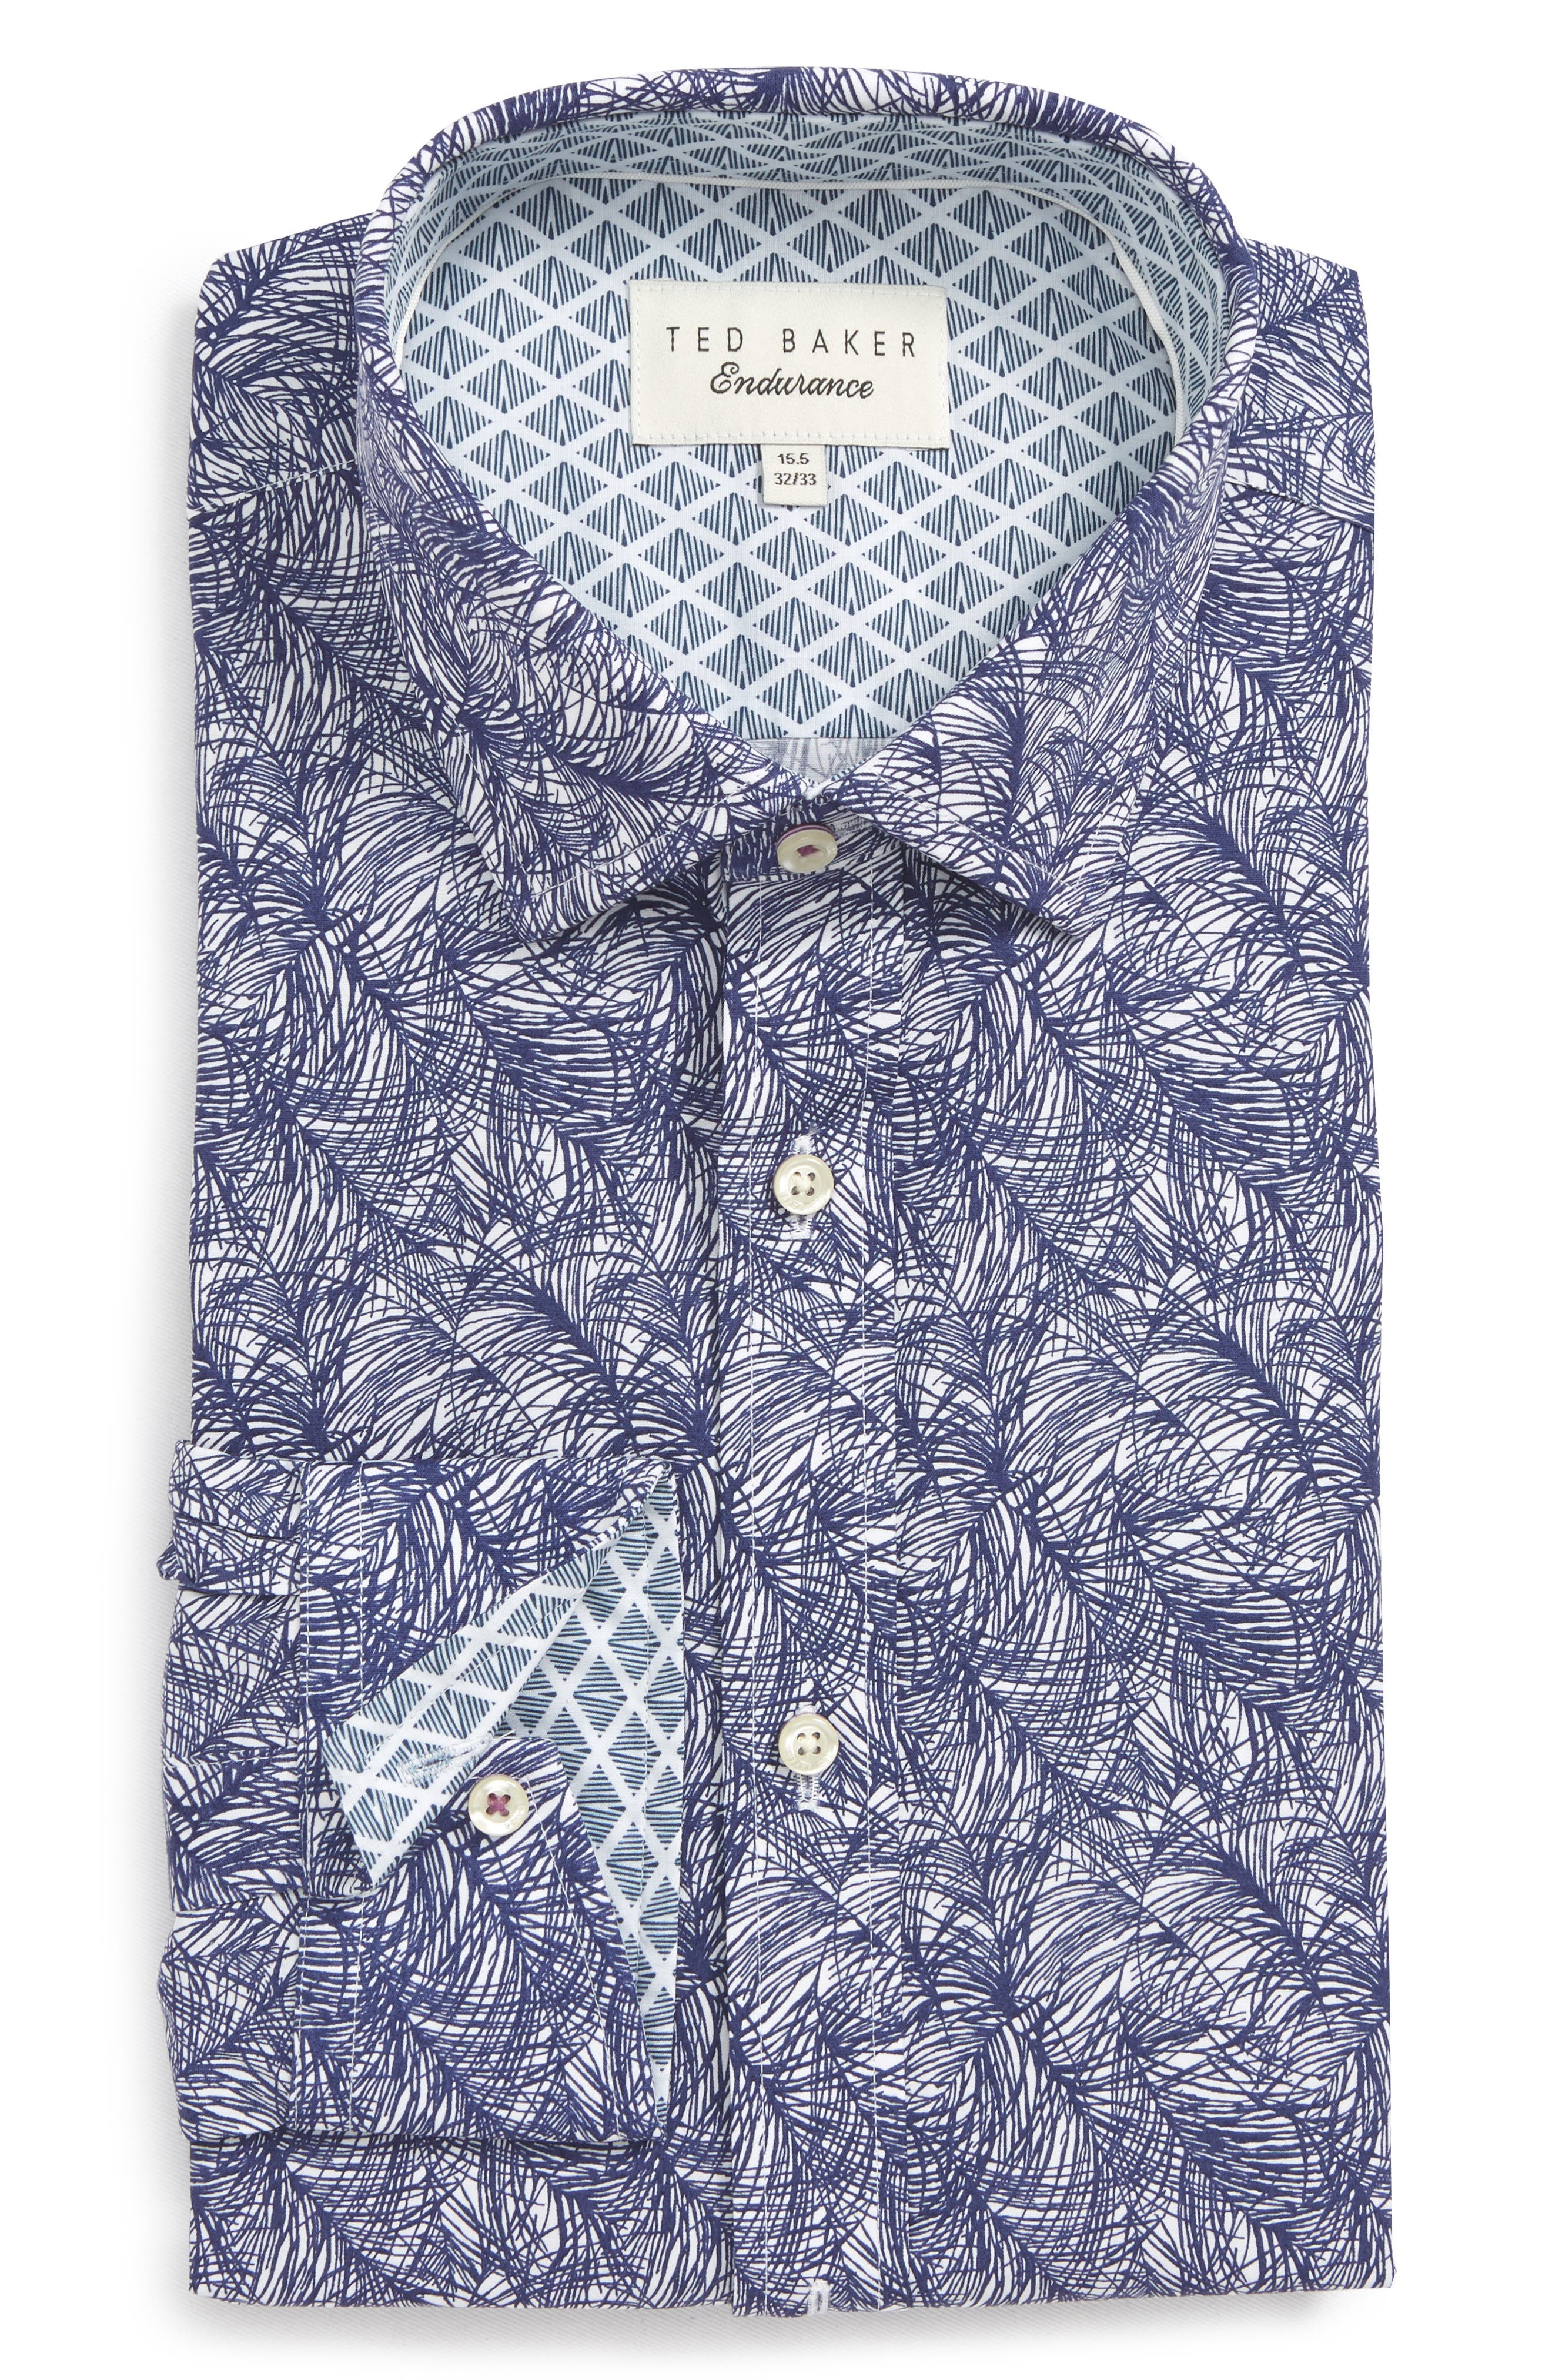 TED BAKER LONDON Messera Trim Fit Print Dress Shirt, Main, color, 410